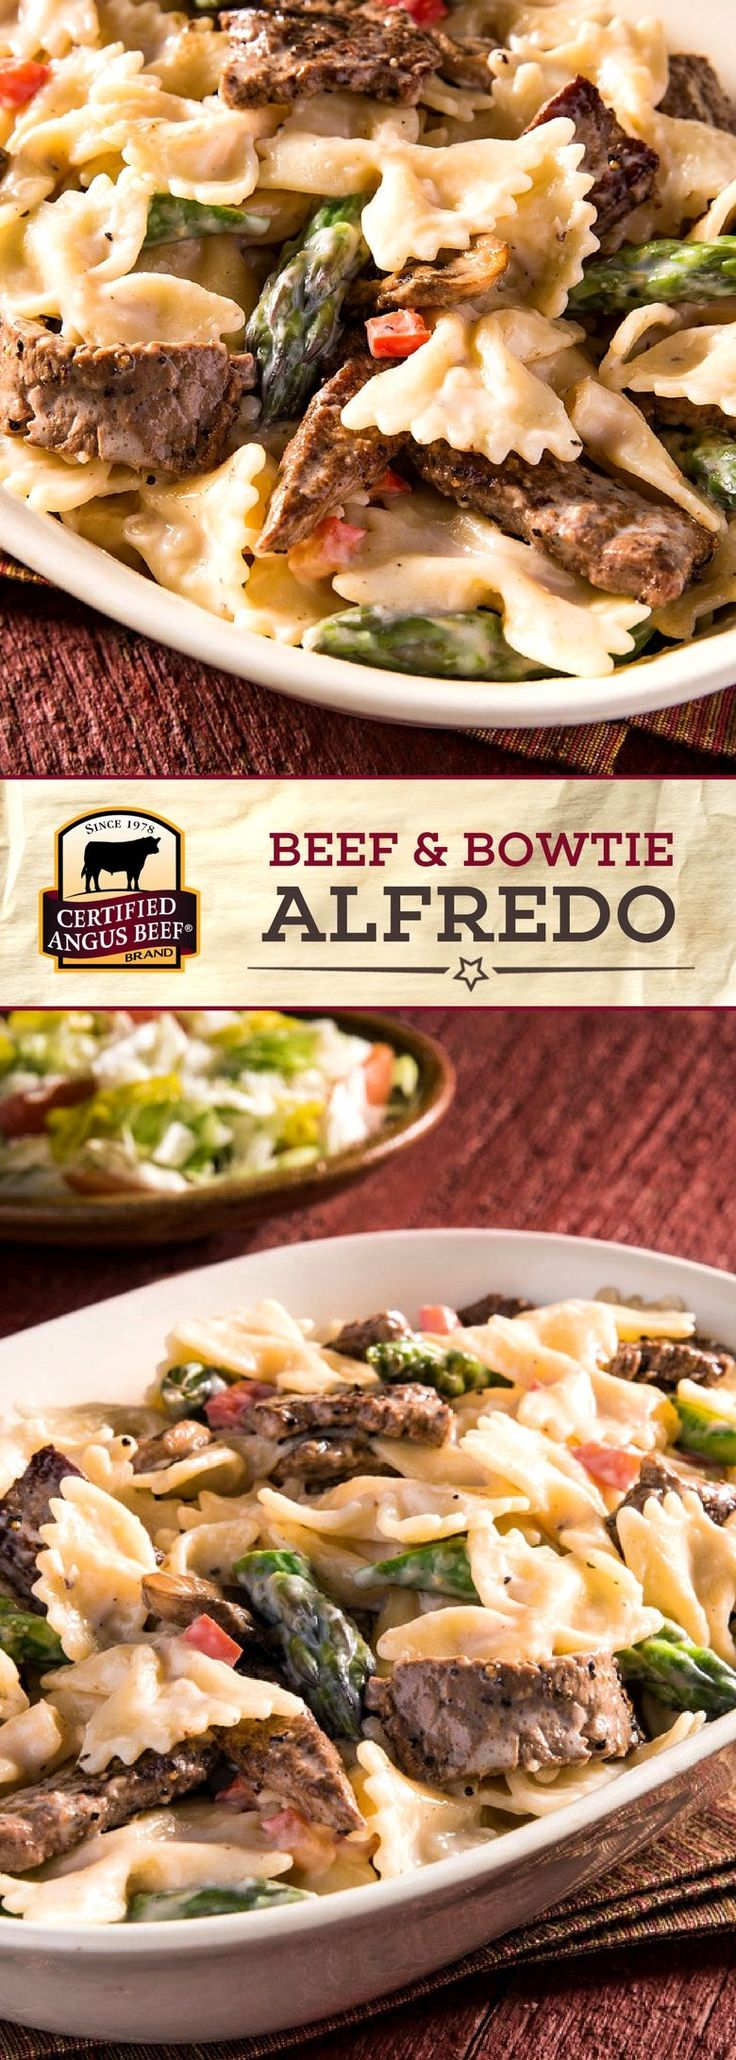 Certified Angus Beef®️ top round steak is the secret to this hearty and DELICIOUS Beef and Bowtie Alfredo recipe. Red pepper, mushrooms, and asparagus add texture and depth to this EASY pasta recipe, while the combination of Alfredo sauce and Parmesan cheese makes it extra creamy! #bestangusbeef #certifiedangusbeef #beefrecipe #pastarecipes #easyrecipes